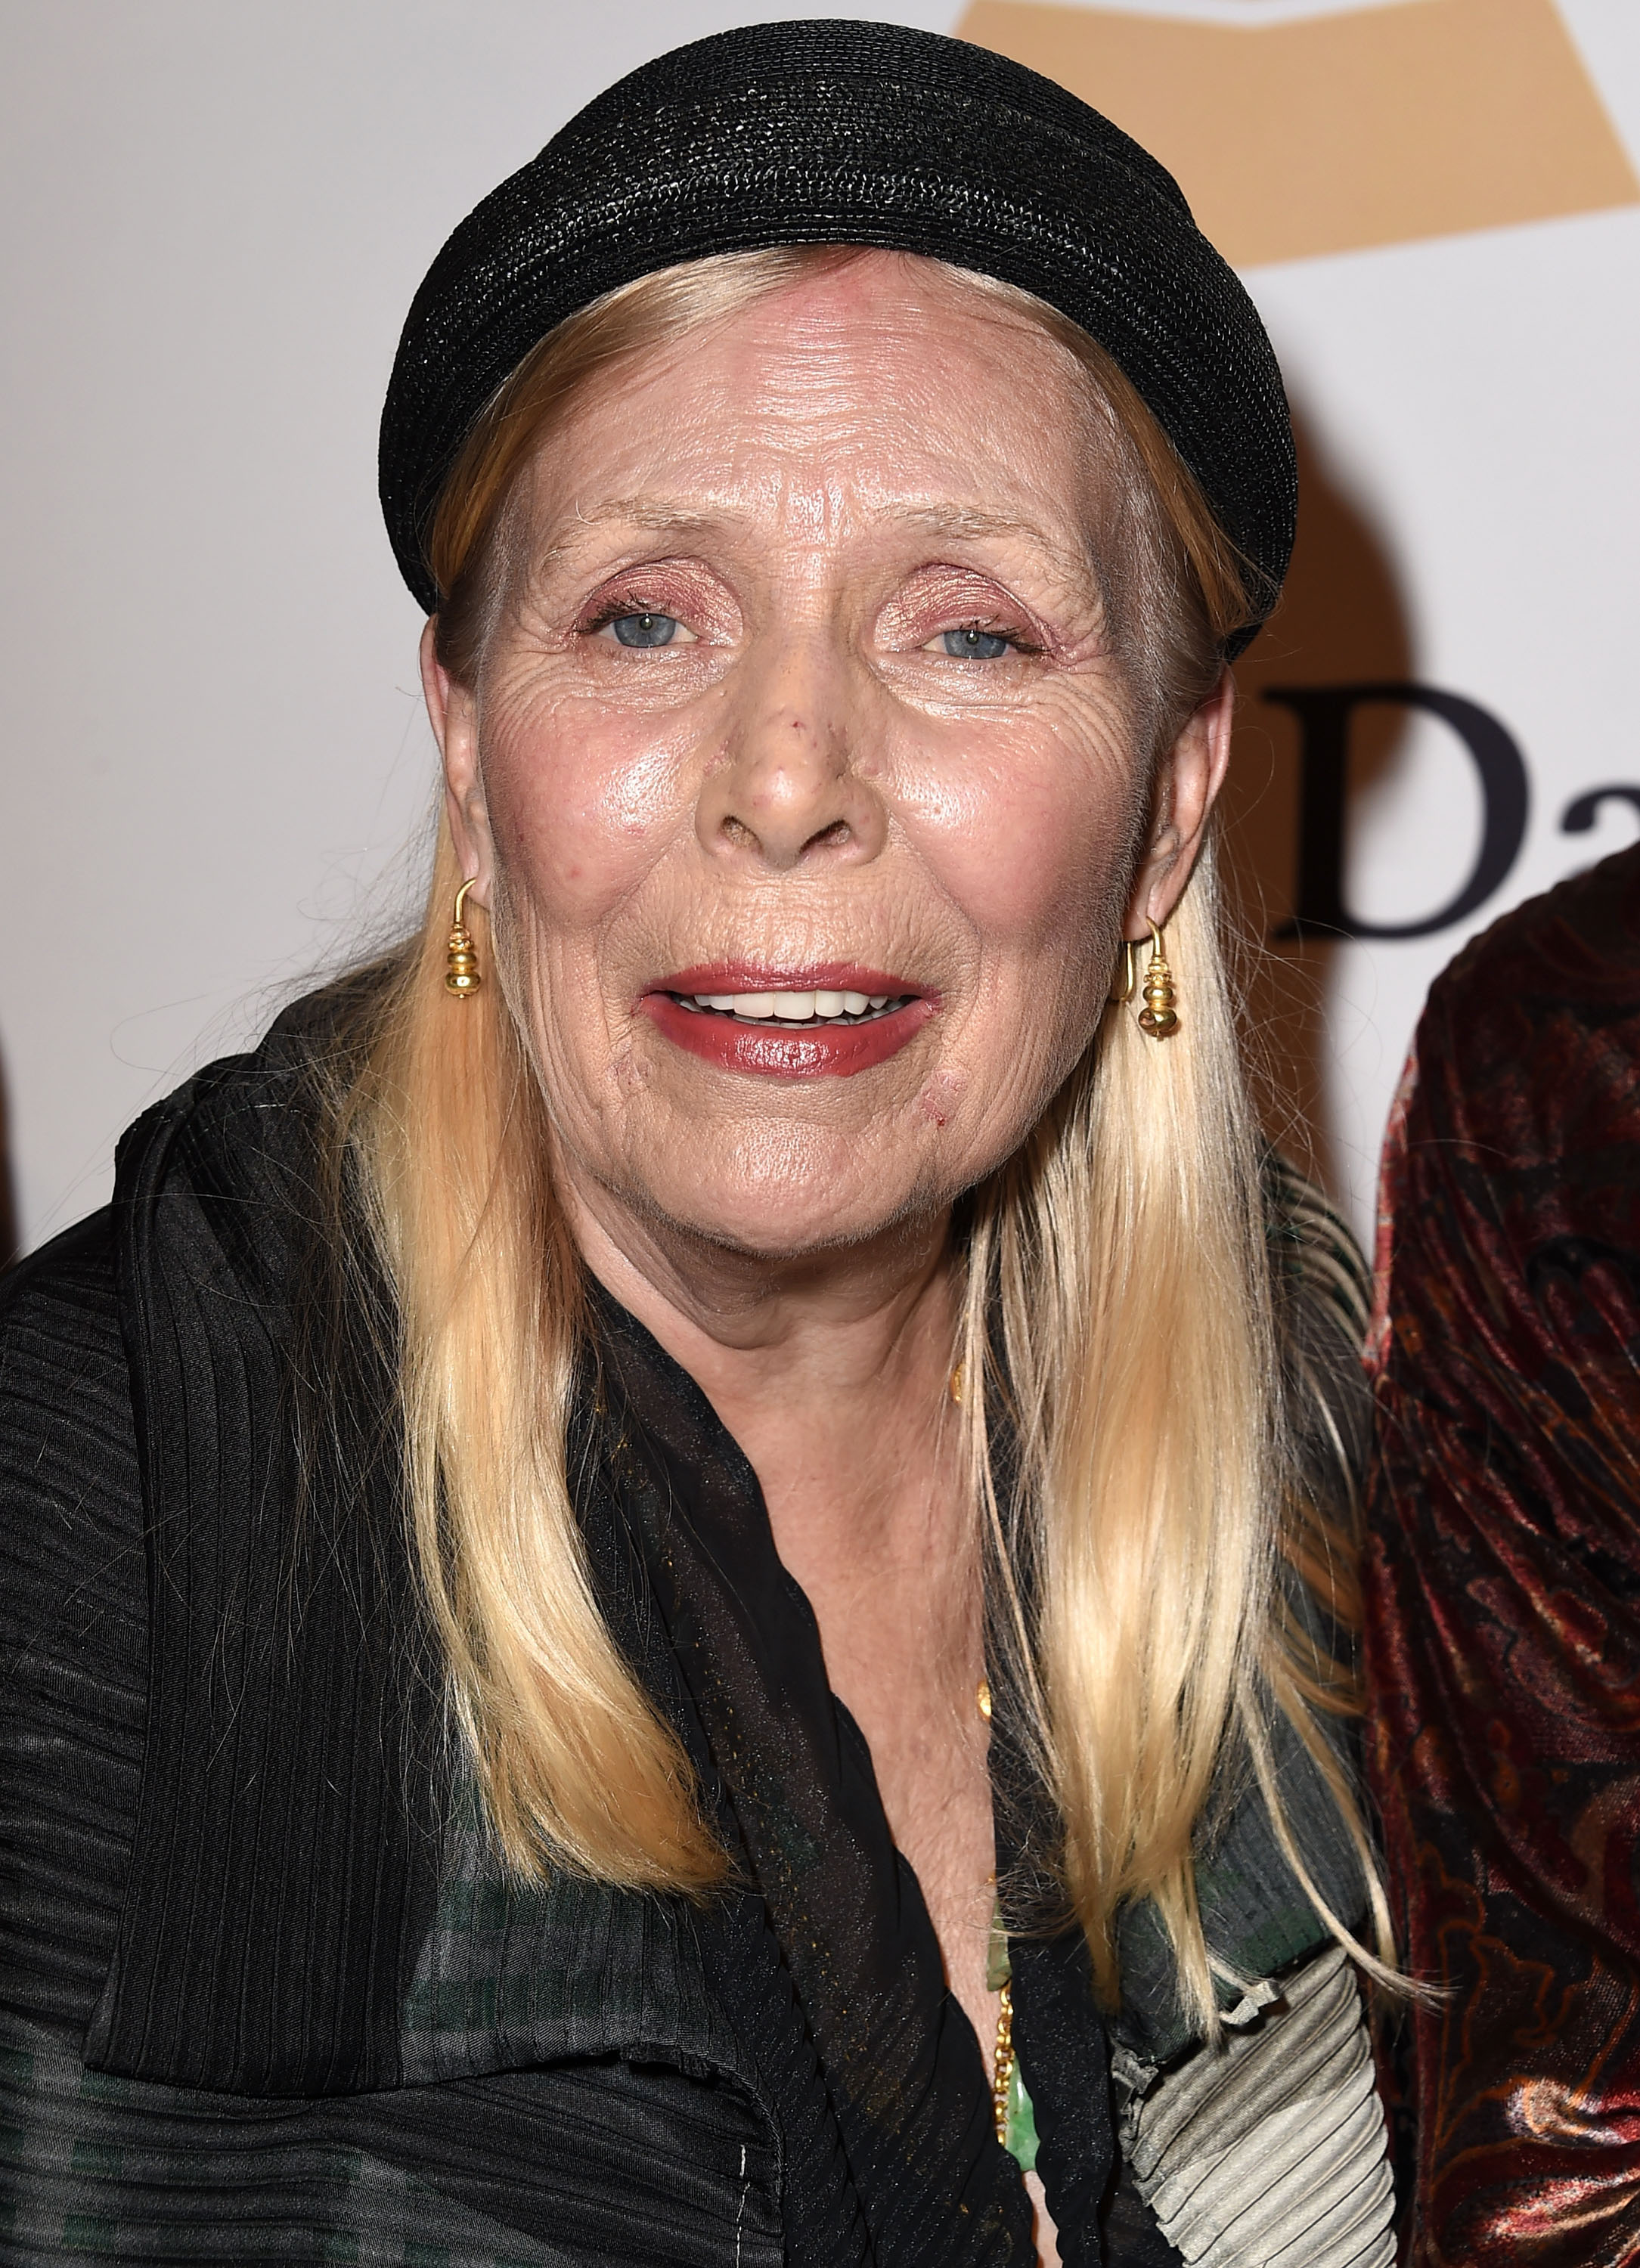 Joni Mitchell arrives at the Pre-Grammy Gala And Salute To Industry Icons Honoring Martin Bandier on February 7, 2015 in Los Angeles.